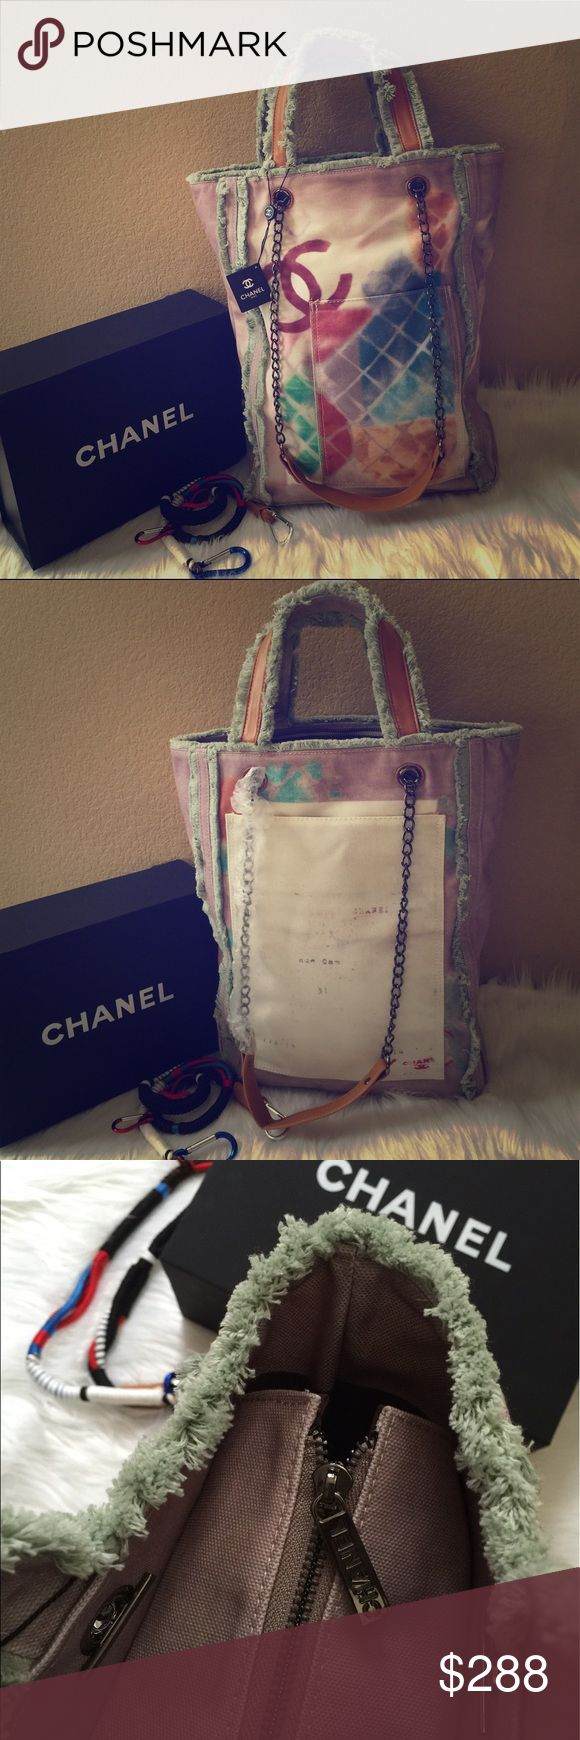 Large canvas tote bag Excellent quality, light gray with green trim, Large size                       16.5x 12.5x 4inches CHANEL Bags Totes